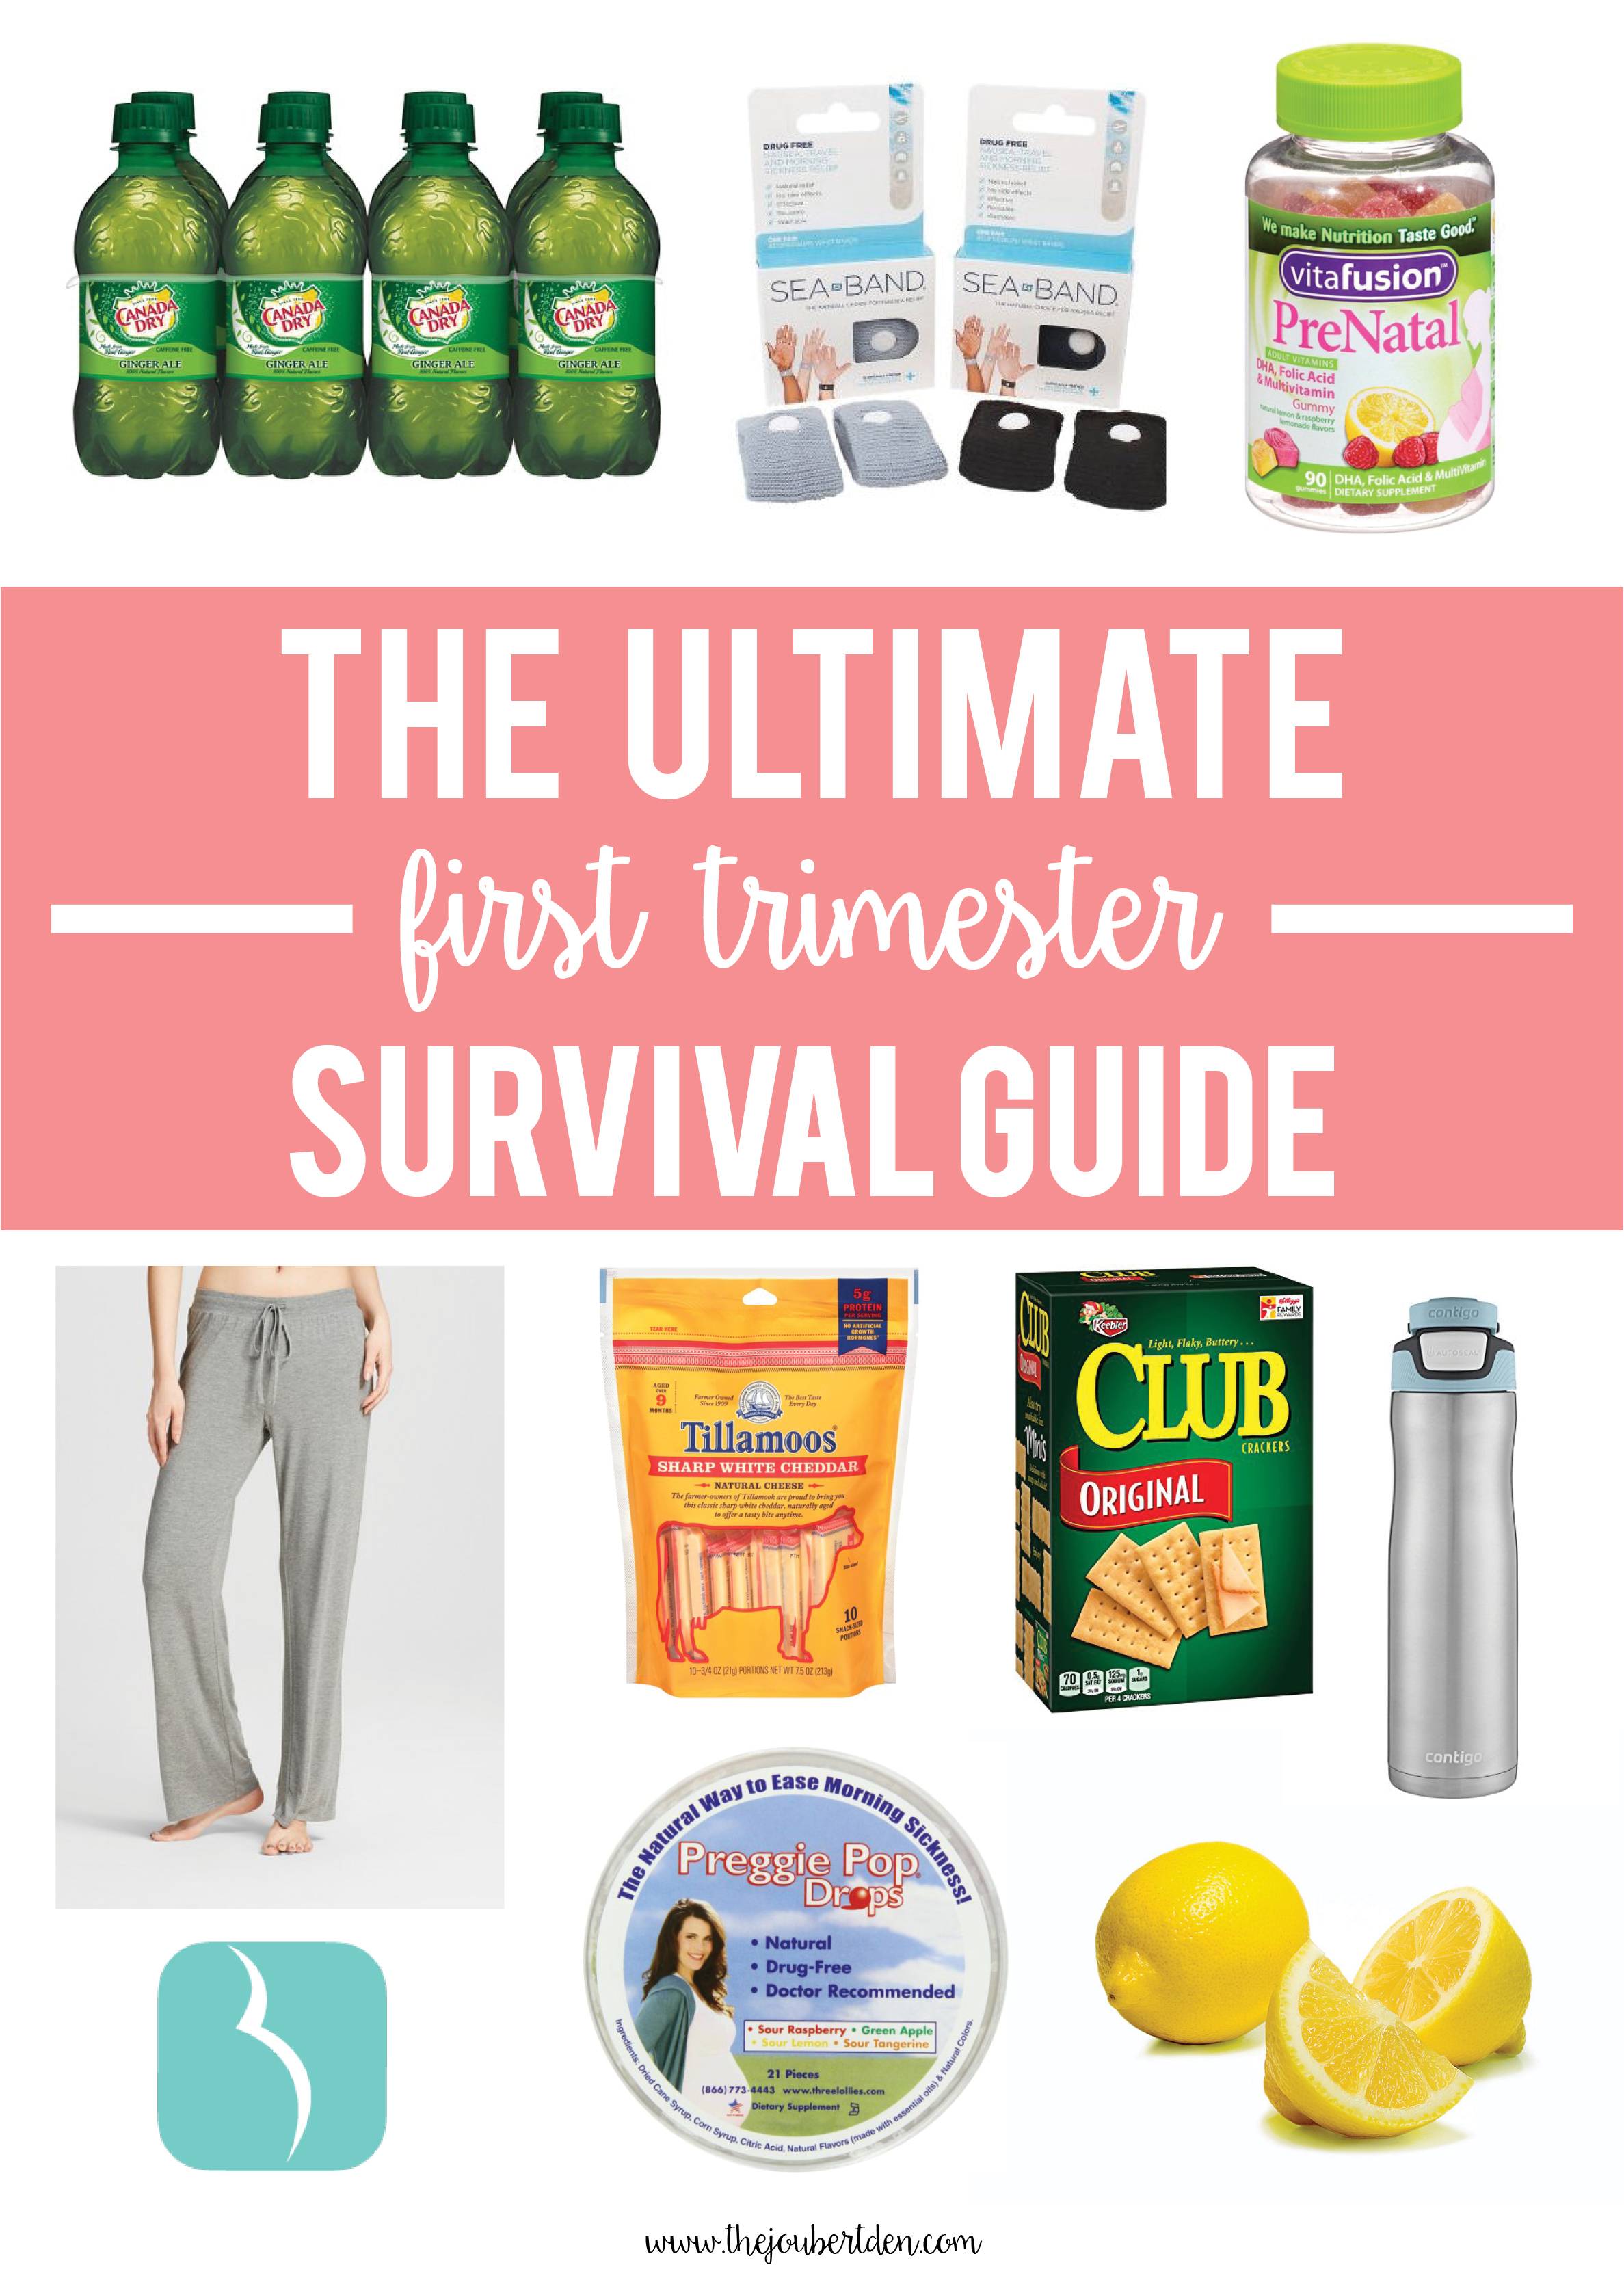 the ultimate first trimester survival guide  the joubert den